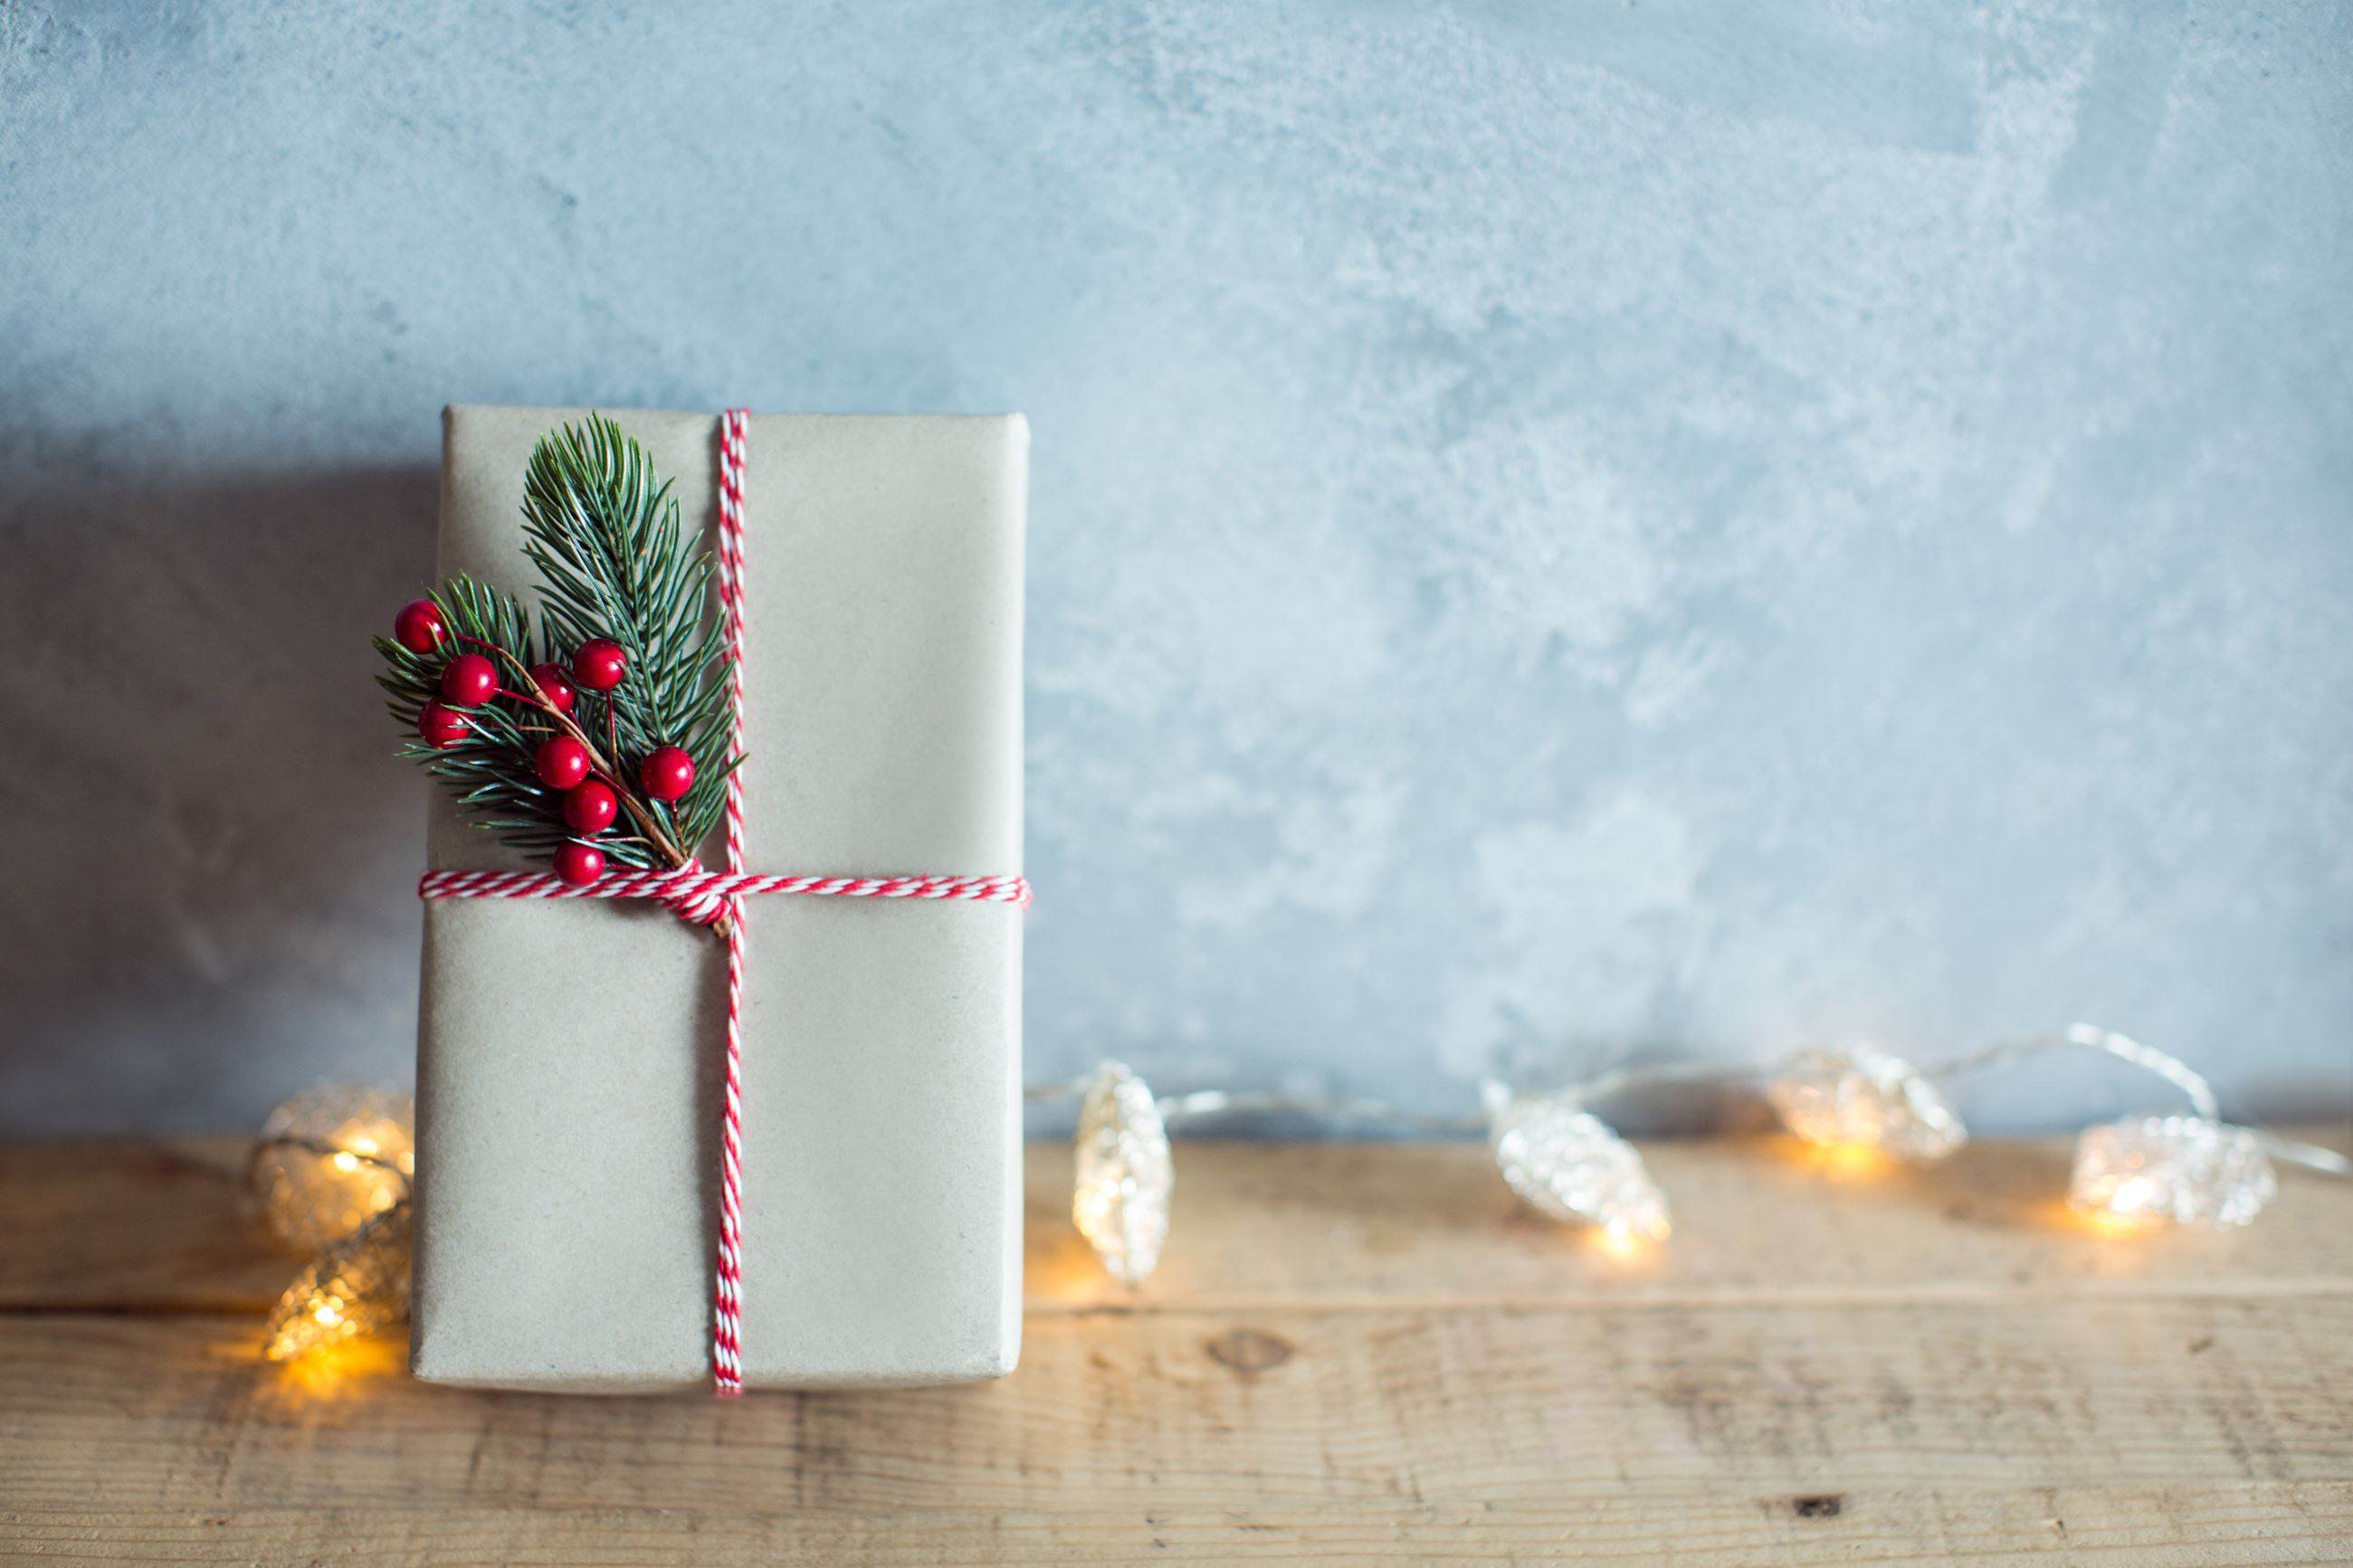 Festivly crafted wrapped gift